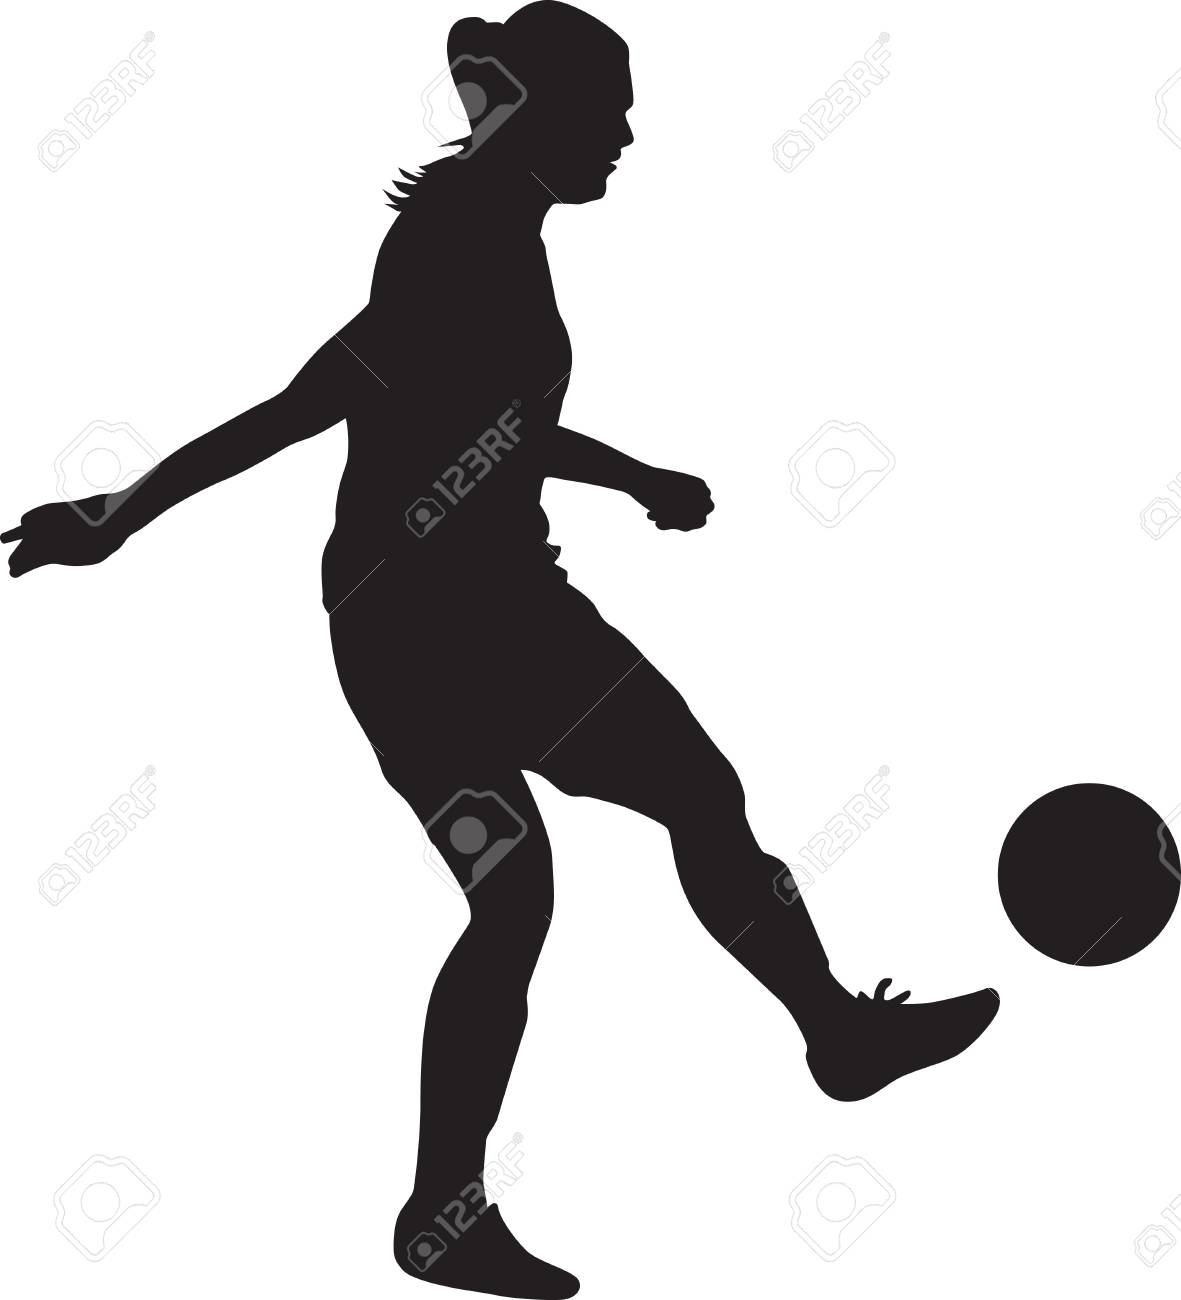 girl soccer player silhouette.